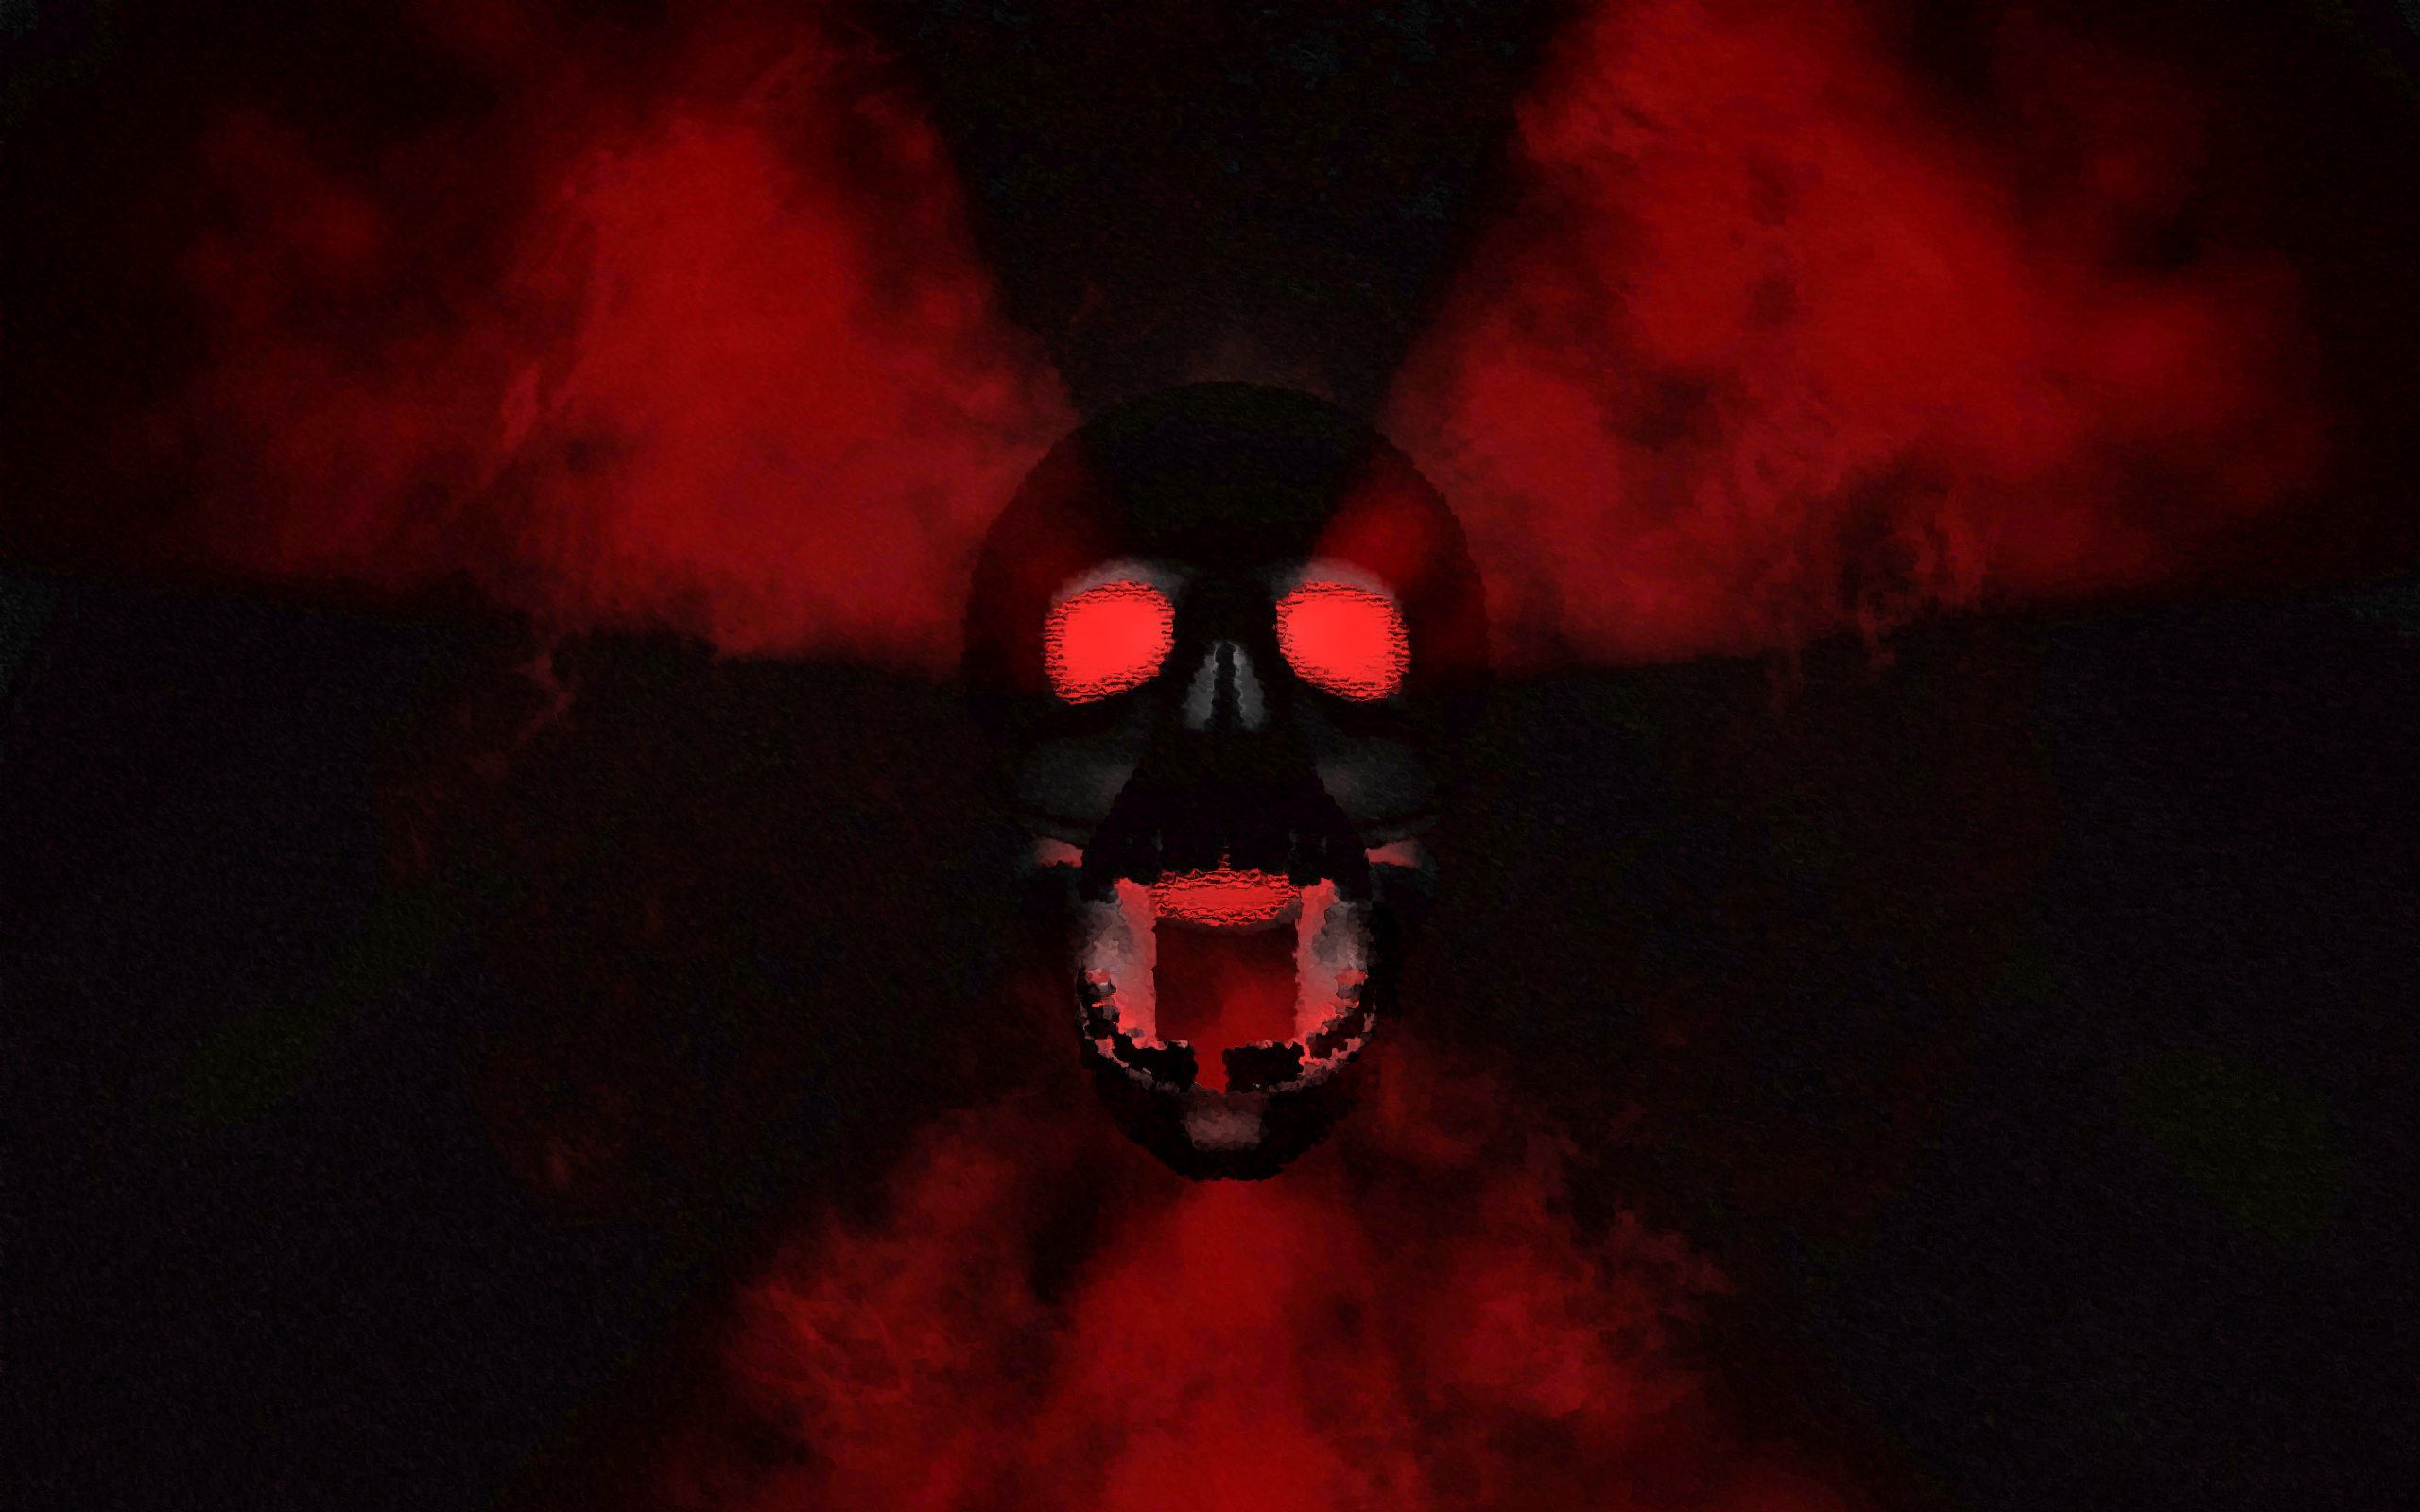 Gas Mask Wallpaper For Iphone Skull Hd Wallpaper Background Image 2560x1600 Id